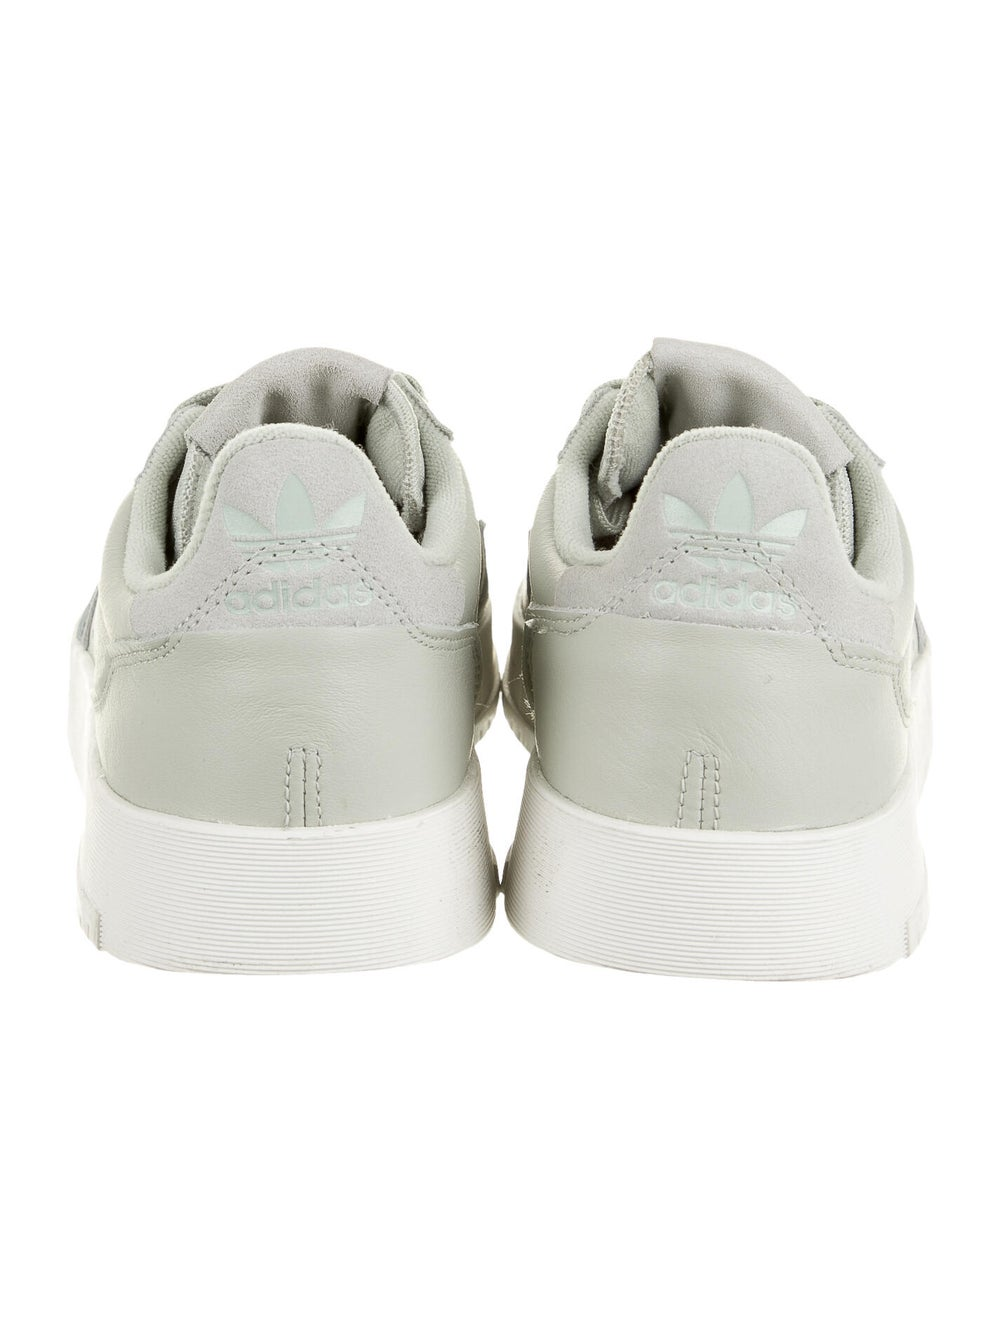 Adidas Leather Athletic Sneakers Green - image 4